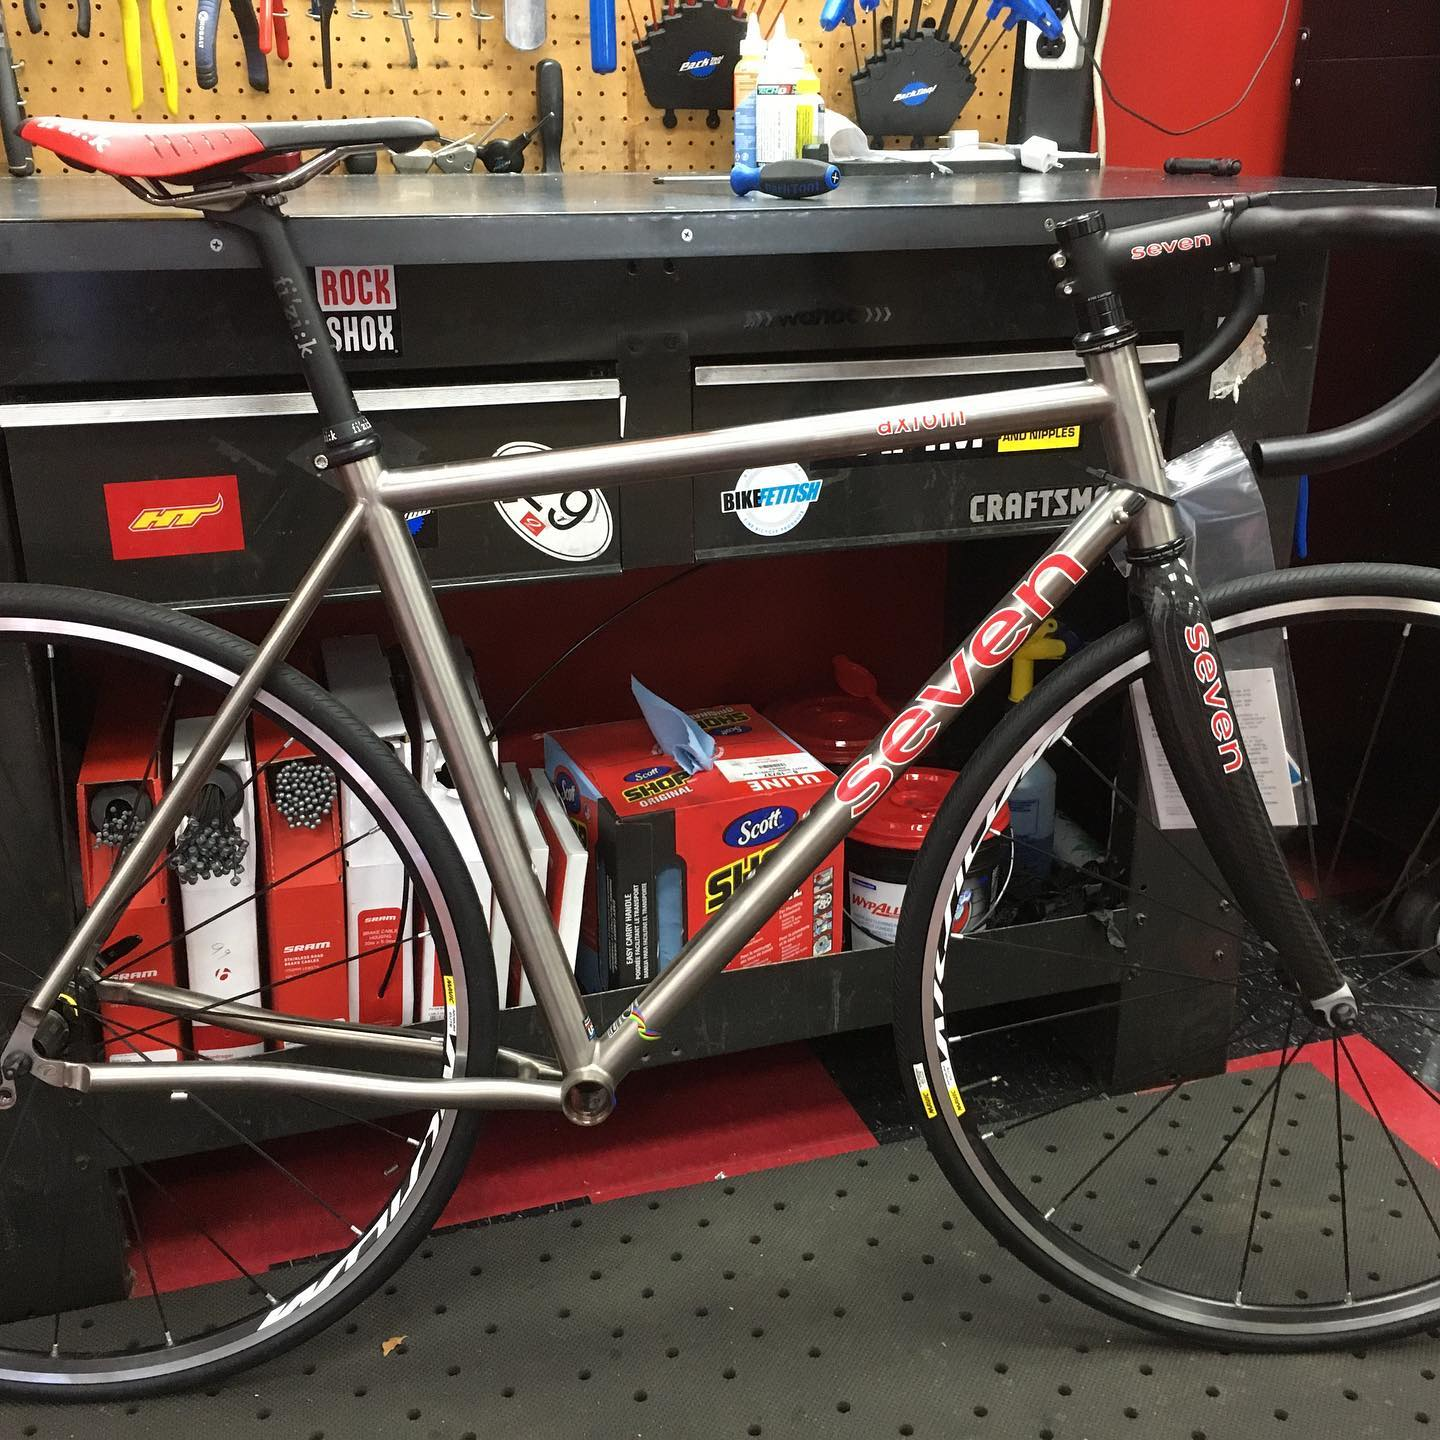 Selling off our Seven Cycles titanium demo road bike less groupset. $1500 Size 56cm. Includes cockpit, Mavic wheels, saddle, and seatpost. Call the shop for more details.